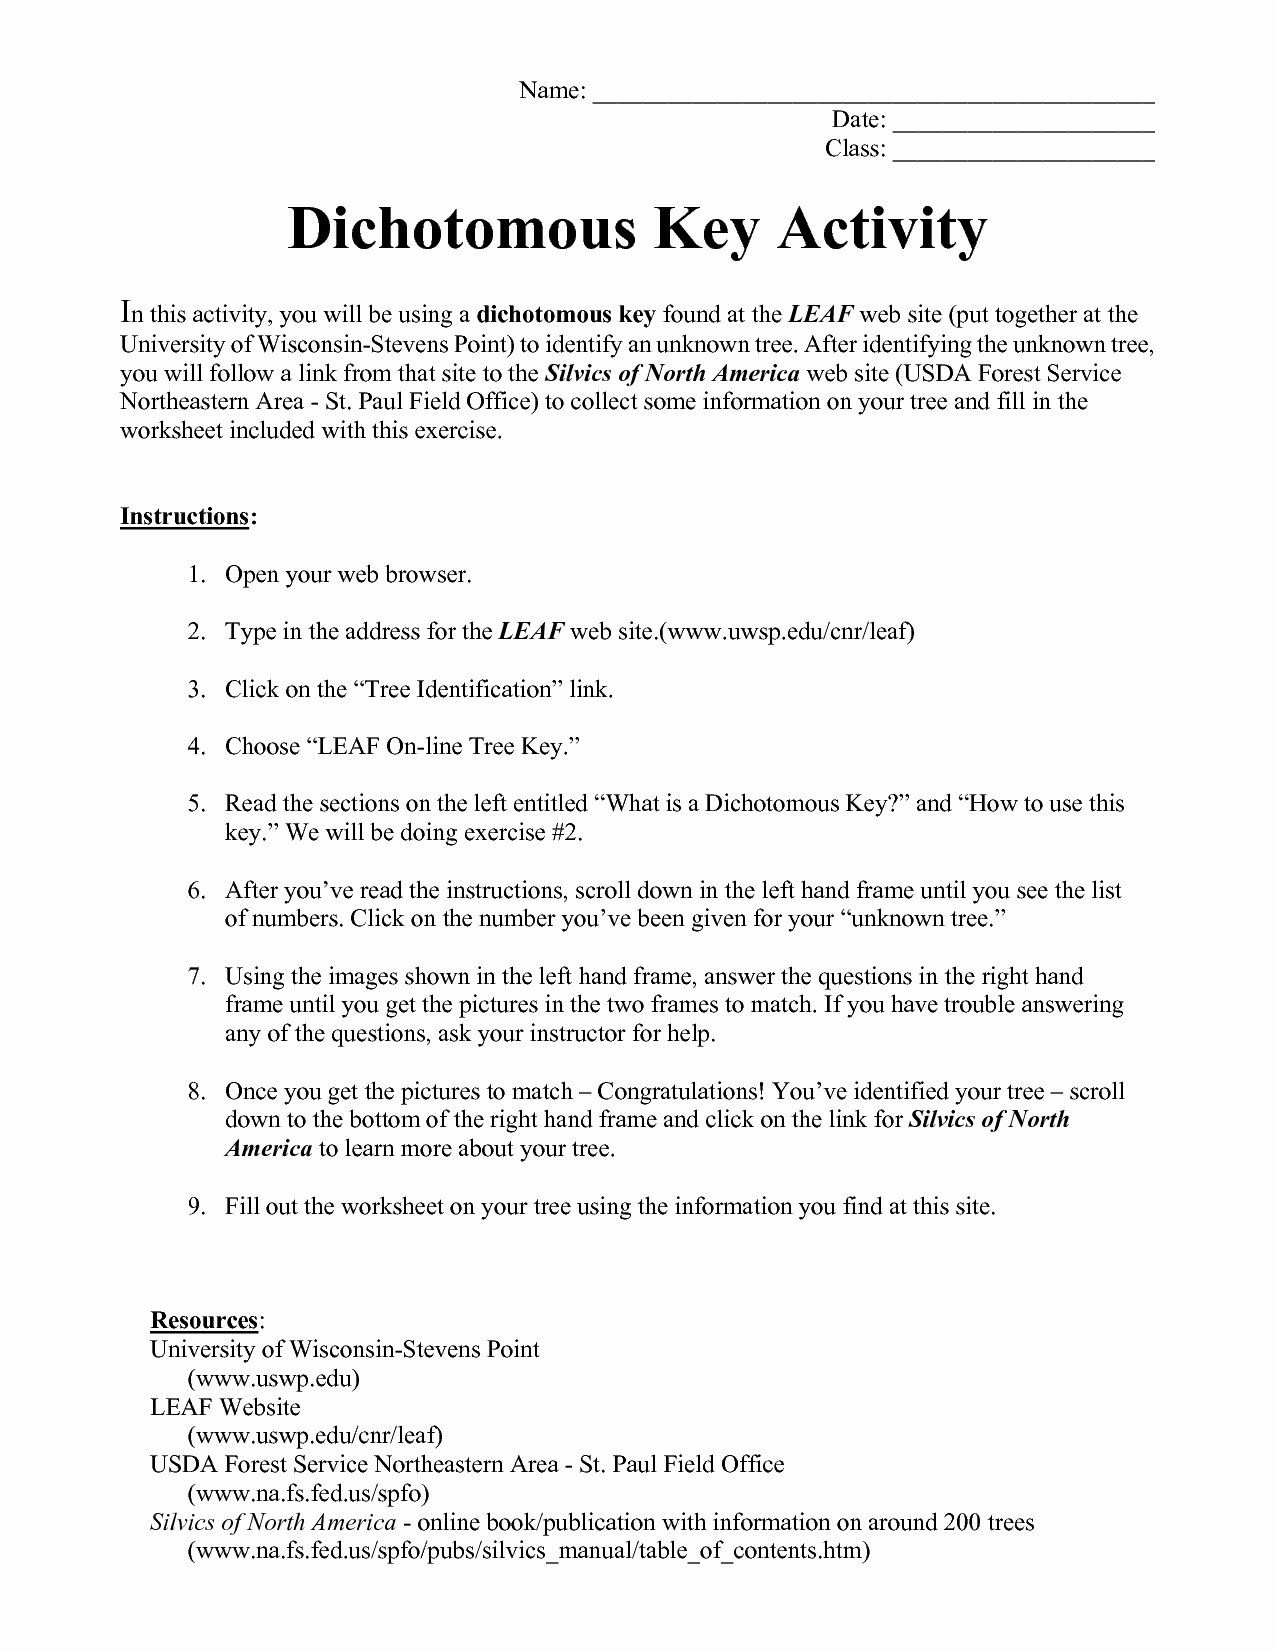 Dichotomous Key Worksheet Beautiful Dichotomous Key